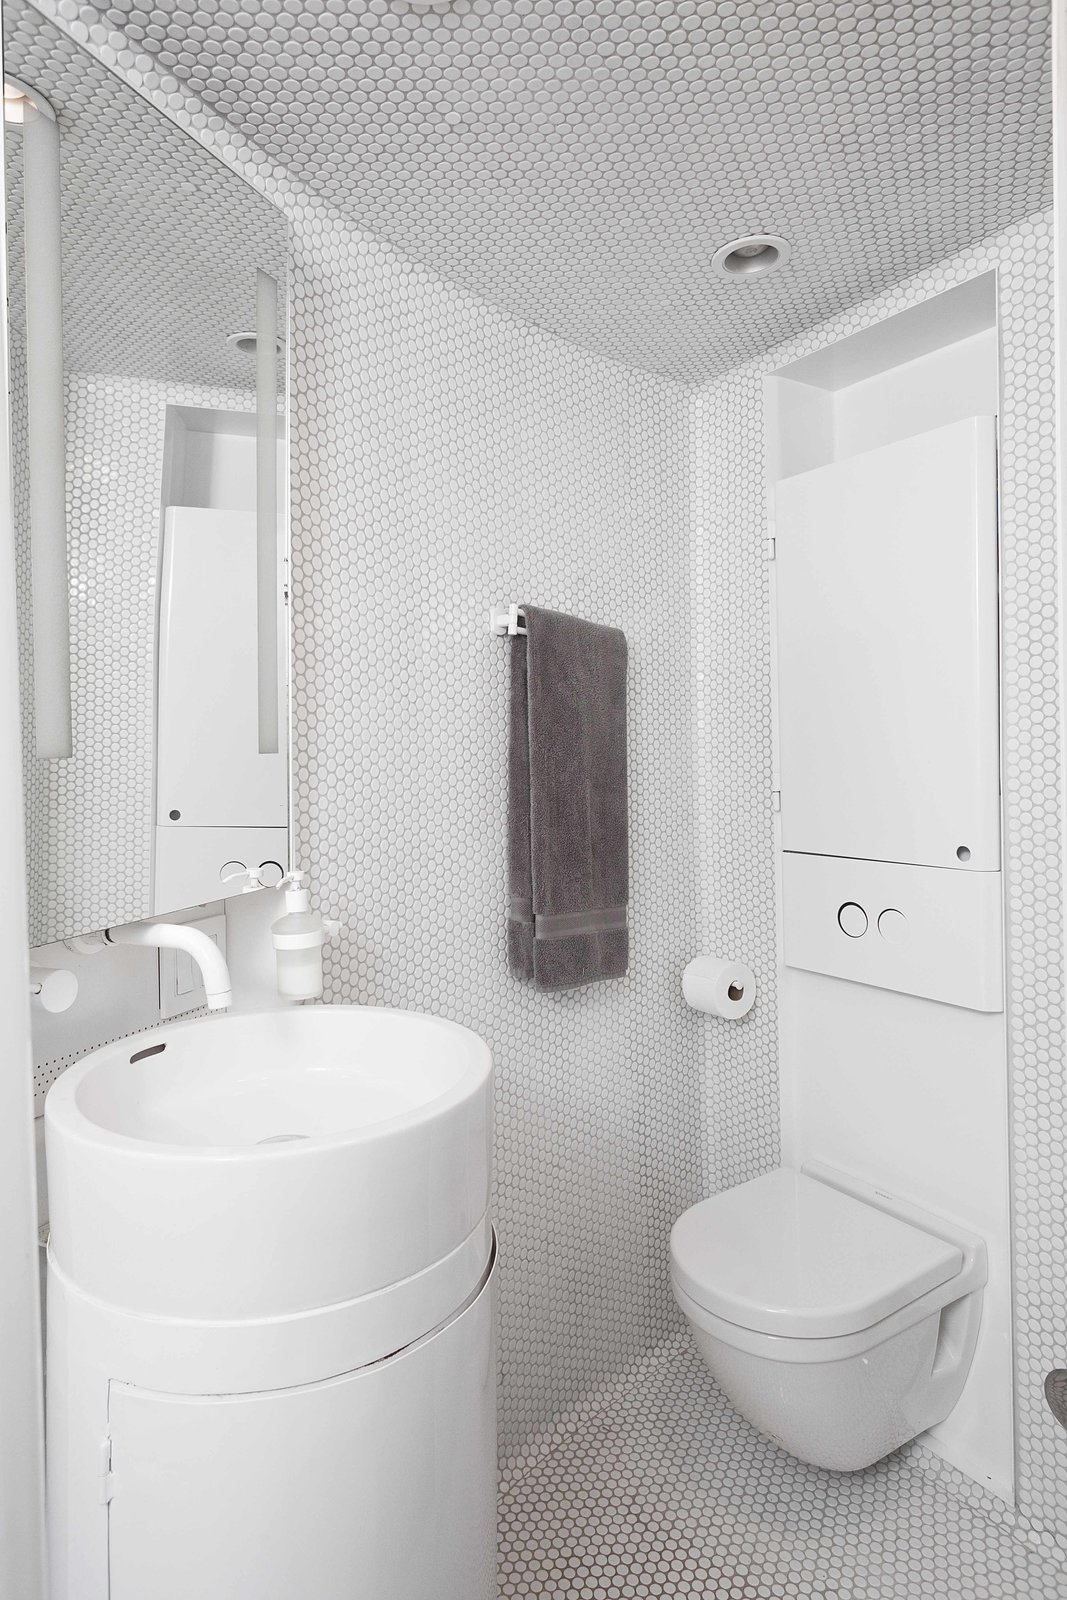 The bathroom features white ceramic glazed penny tile and a Duravit toilet with a custom vanity.